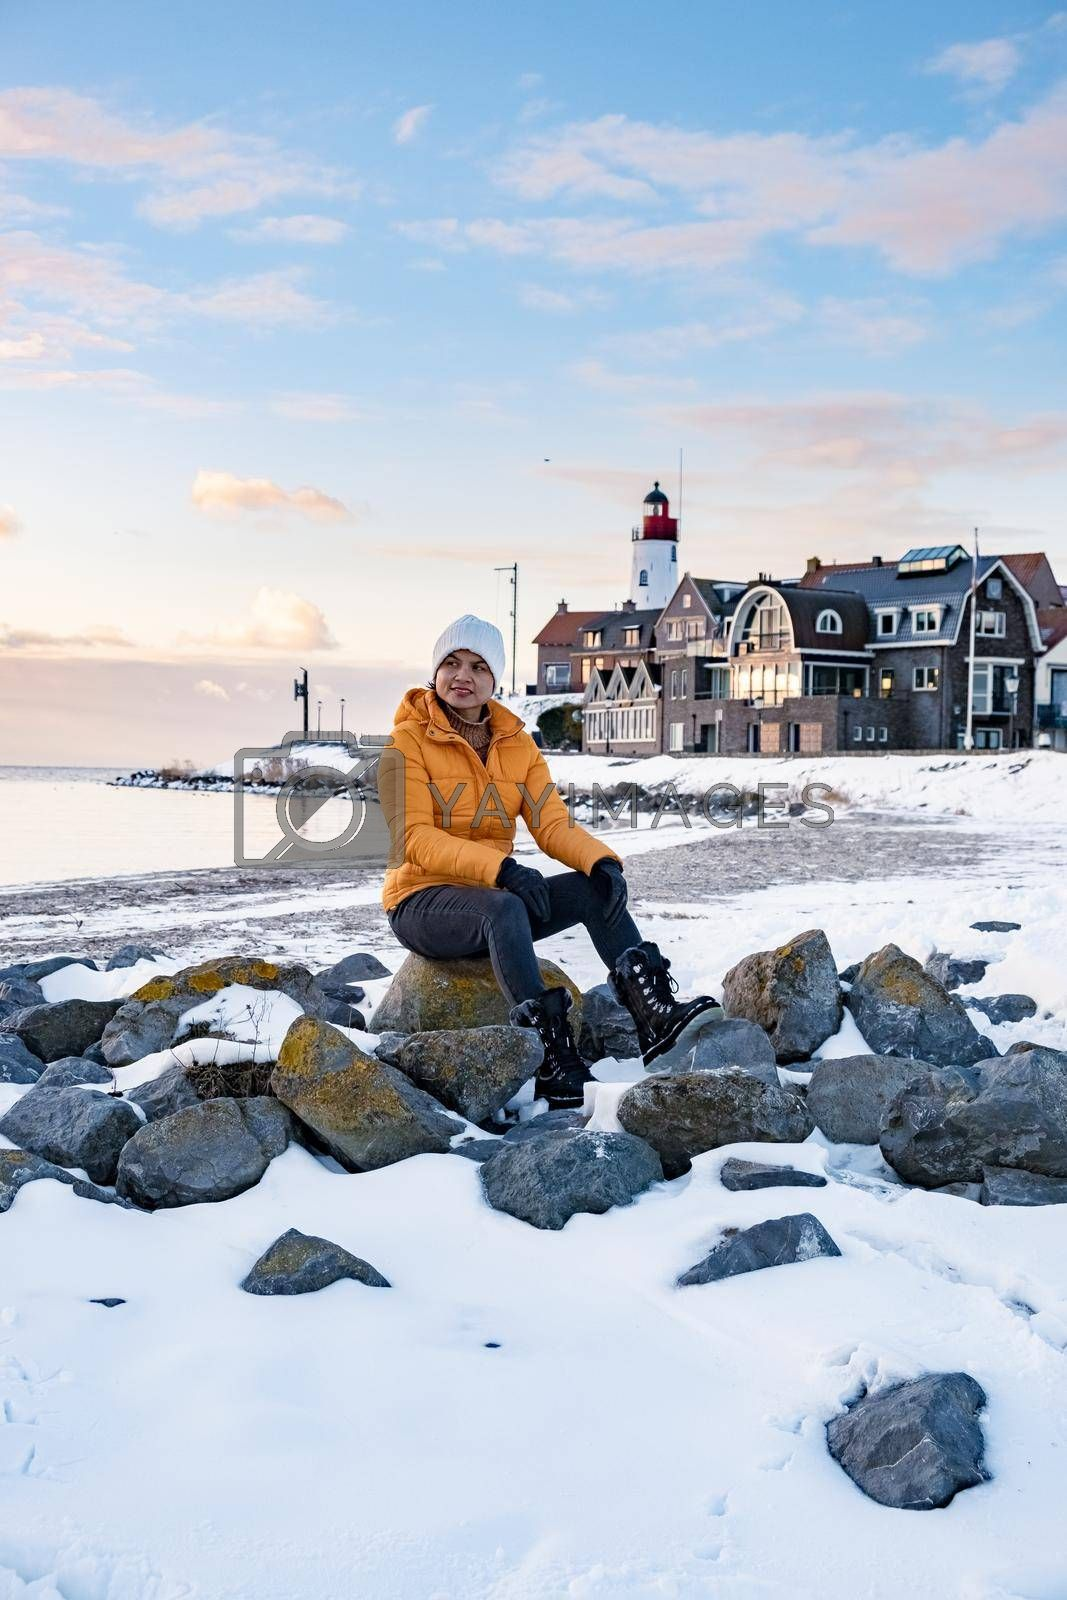 woman by the lighthouse of Urk Netherlands during winter in the snow. Winter weather in the Netherlands by Urk